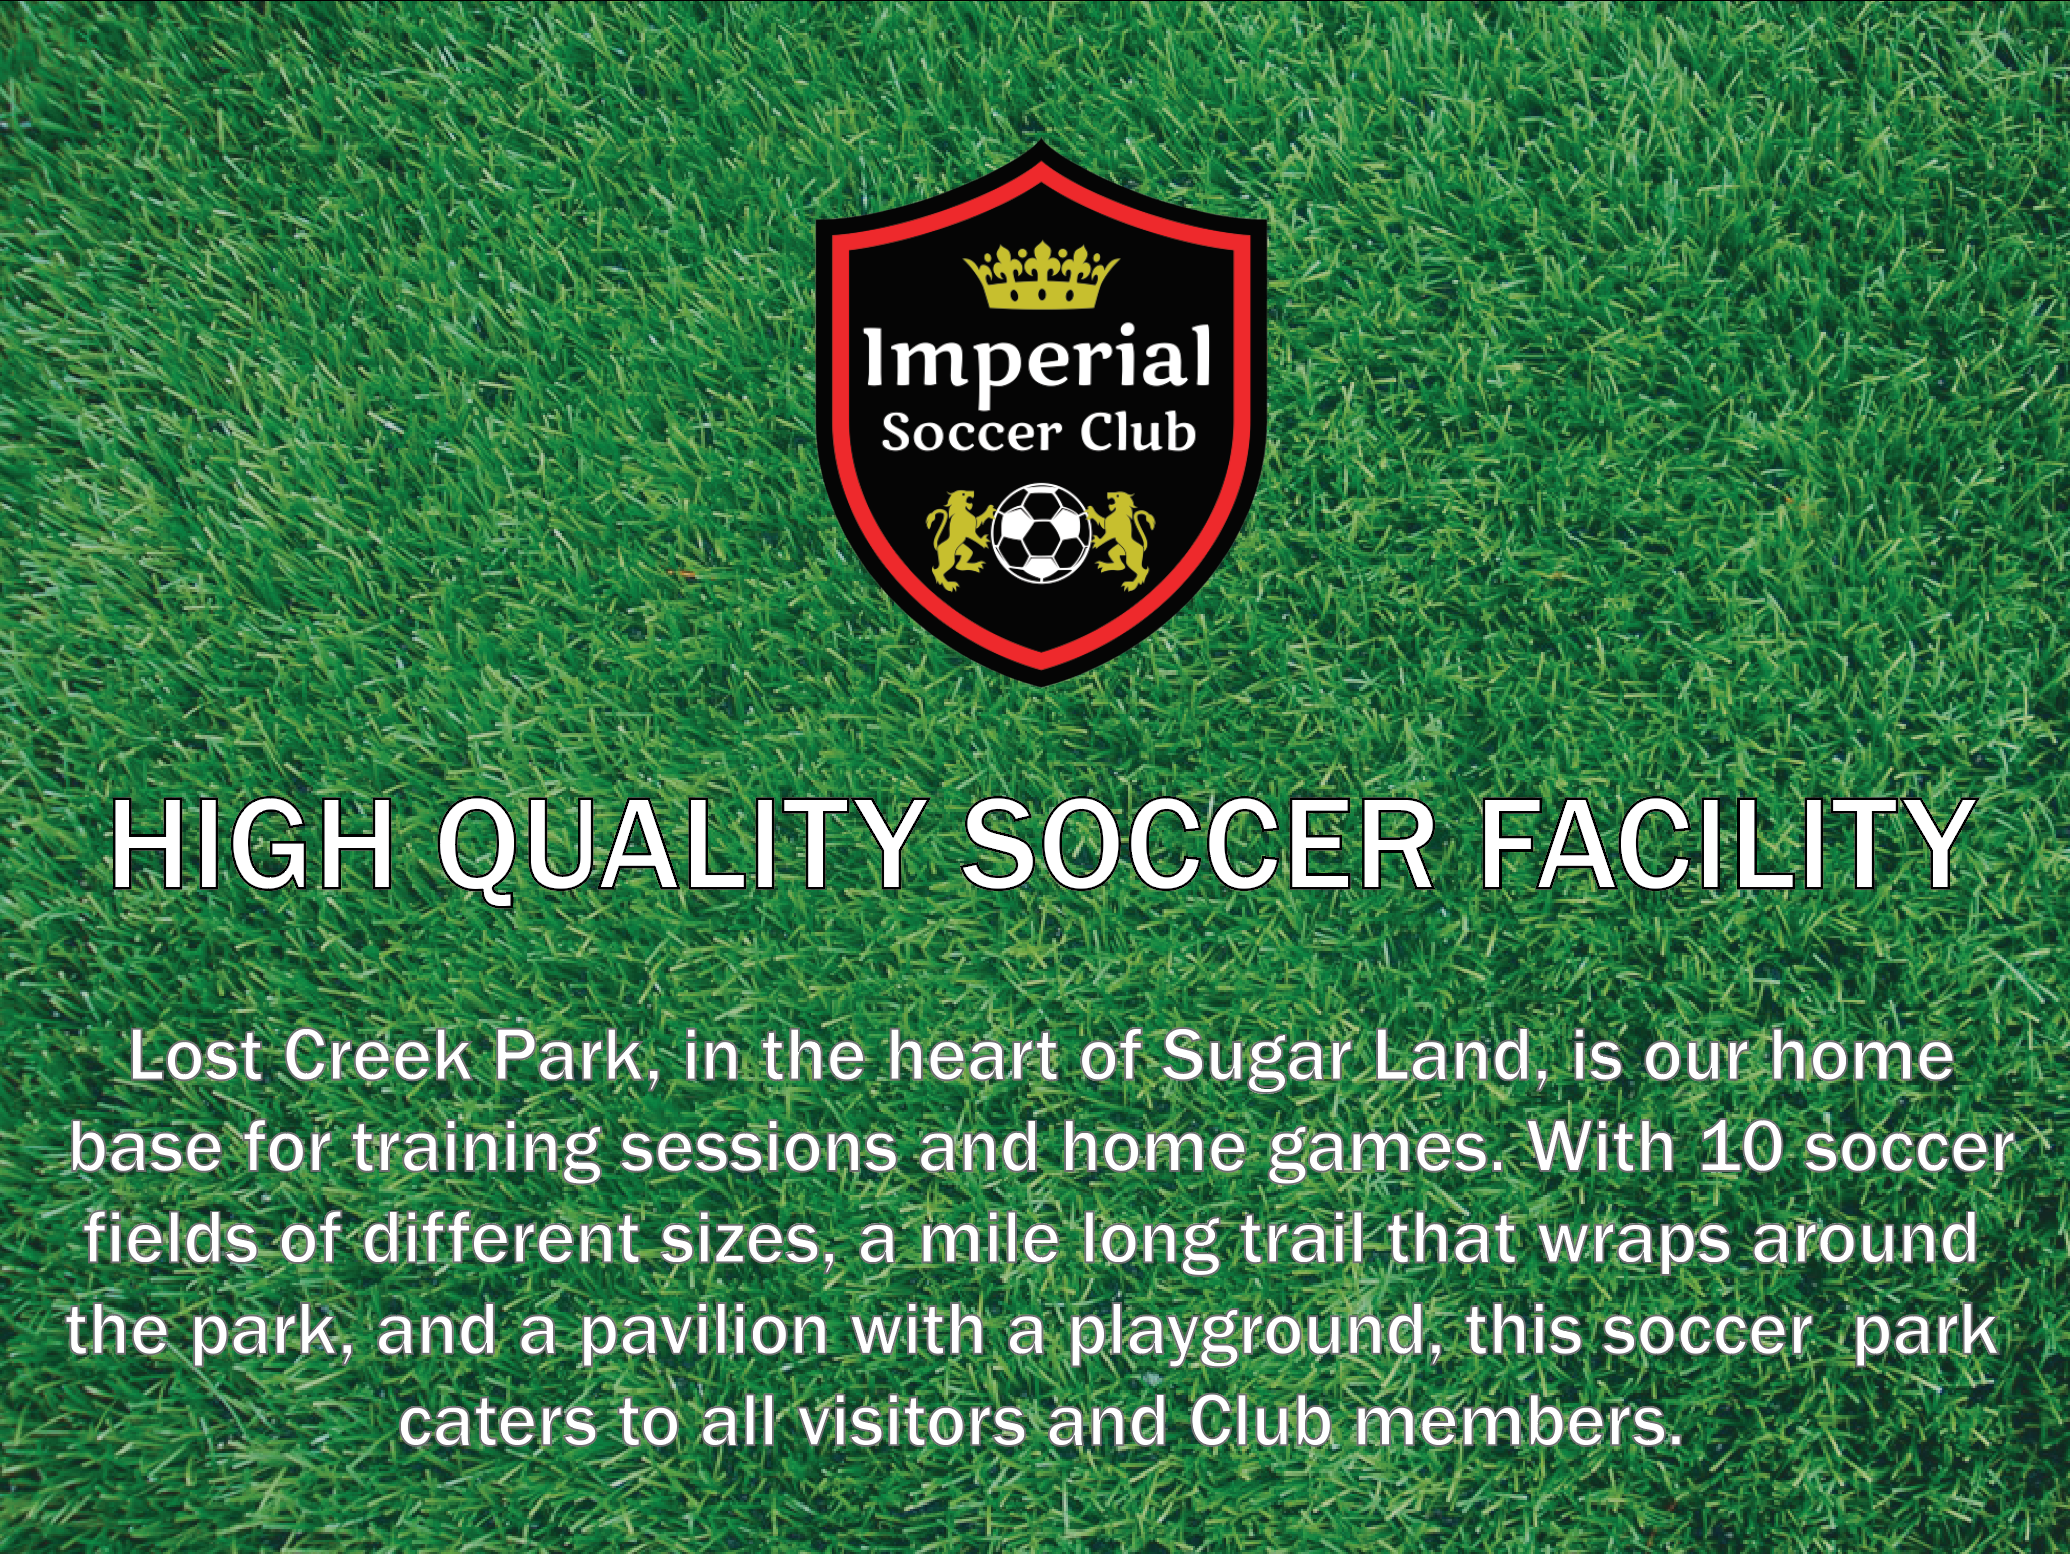 Imperial Soccer Club Field Locations - Recreational Soccer - Competitive Soccer - Academy Soccer